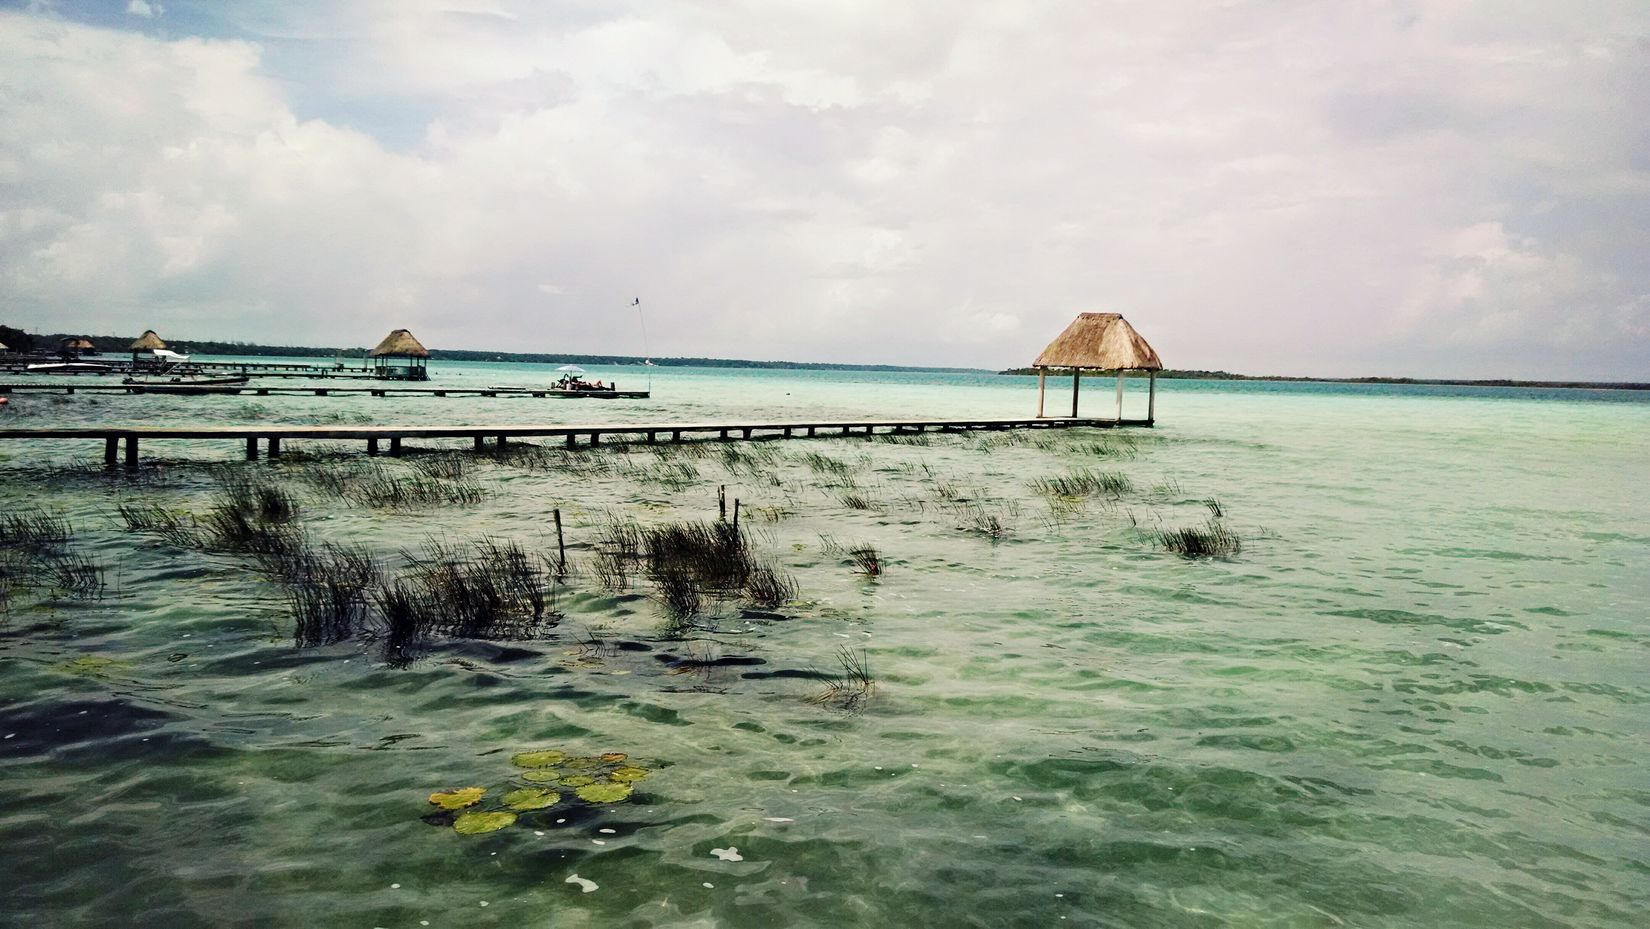 BACALAR - LAGUNA DE LOS 7 COLORES CANCUN Q. ROO, MEXICO. Bacalar Cancunquintanaroo Laguna 7colores Enjoying Nature Perfectworld Enjoying Life Watercolor Shape Freedoom  Enjoying The View Picturing Individuality Peace And Quiet Lifeworthliving Followyourdreams Nature Is Freedom